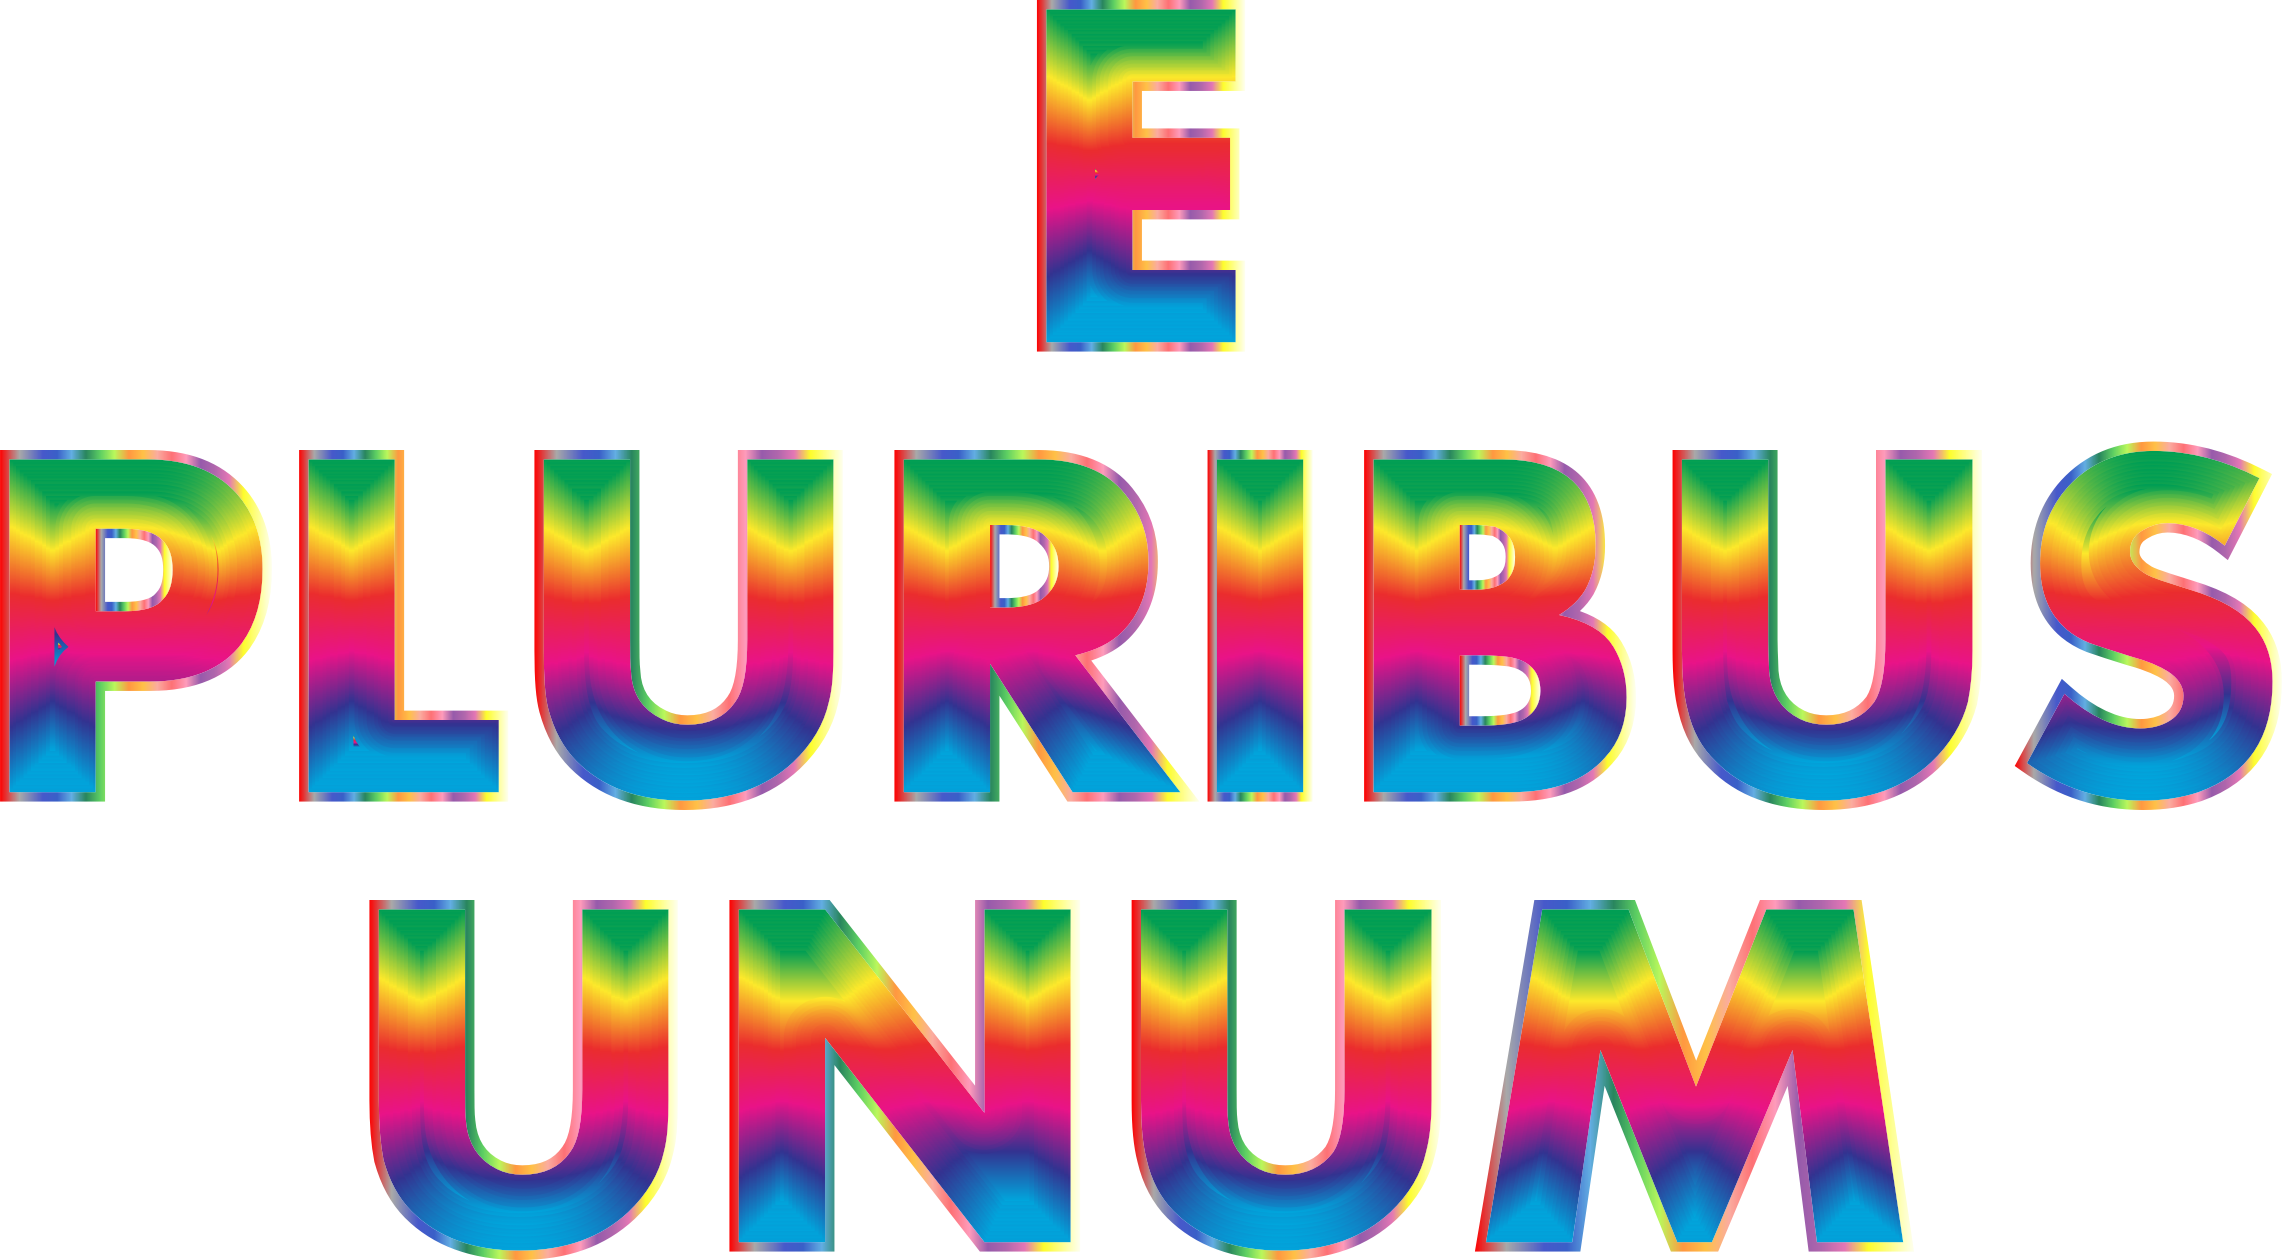 E Pluribus Unum Rainbow Typography No Background by GDJ